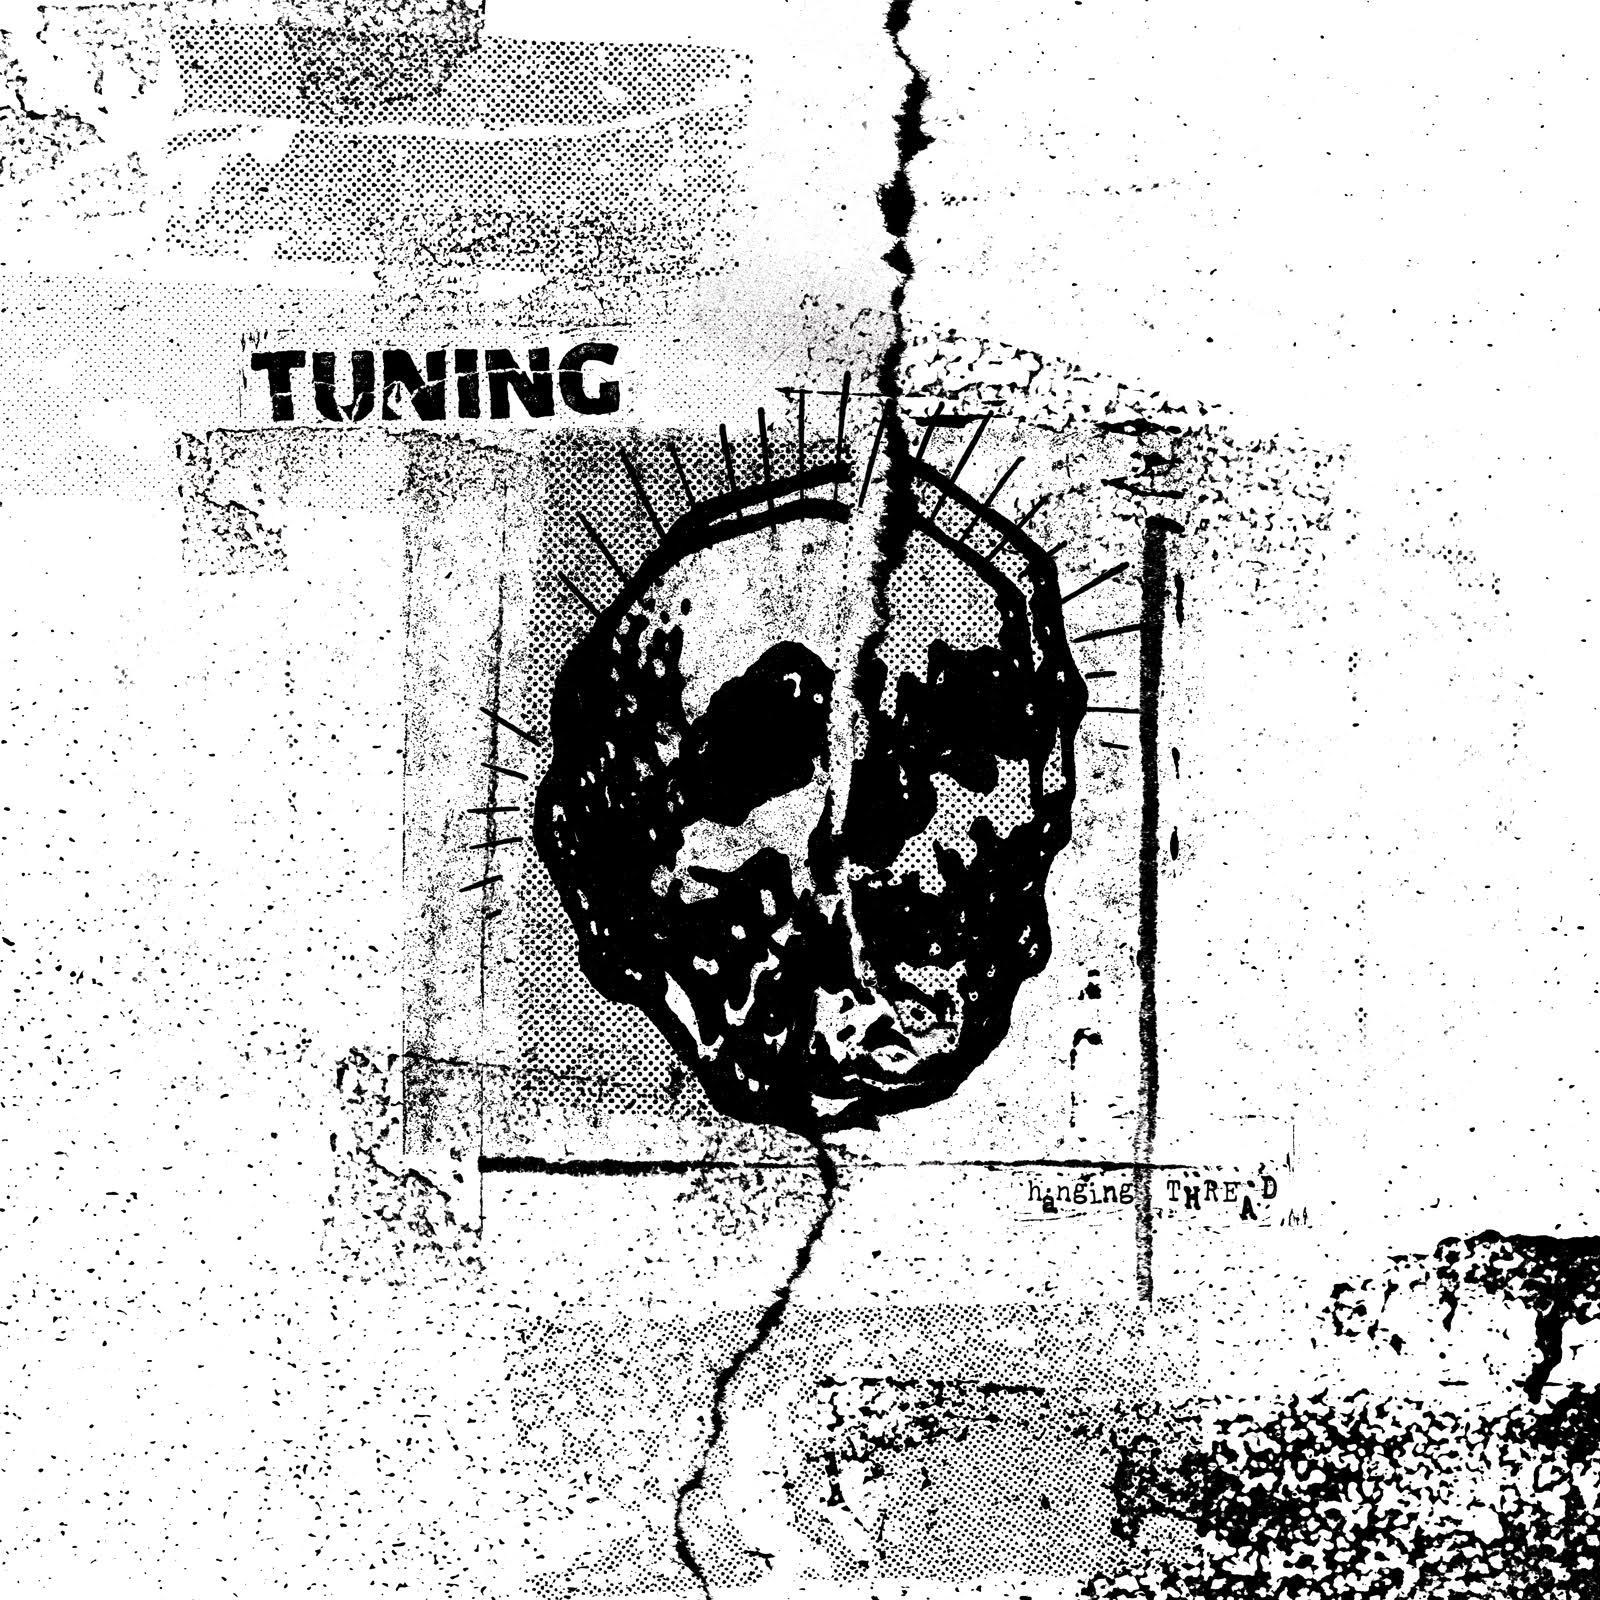 TUNING 'Hanging Thread' LP